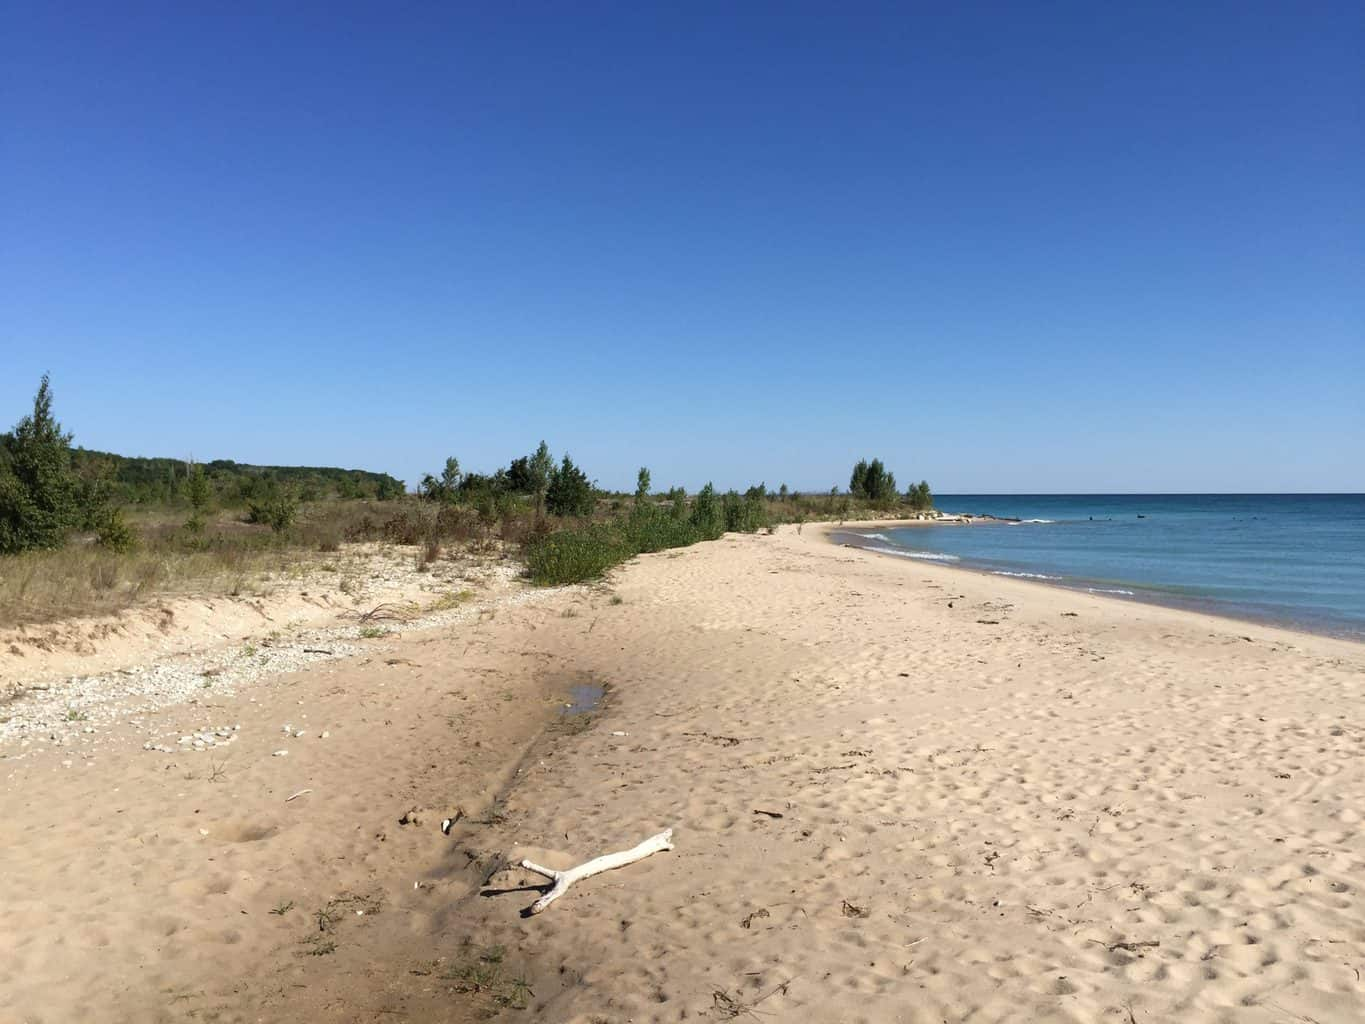 North Manitou - The Awesome Mitten